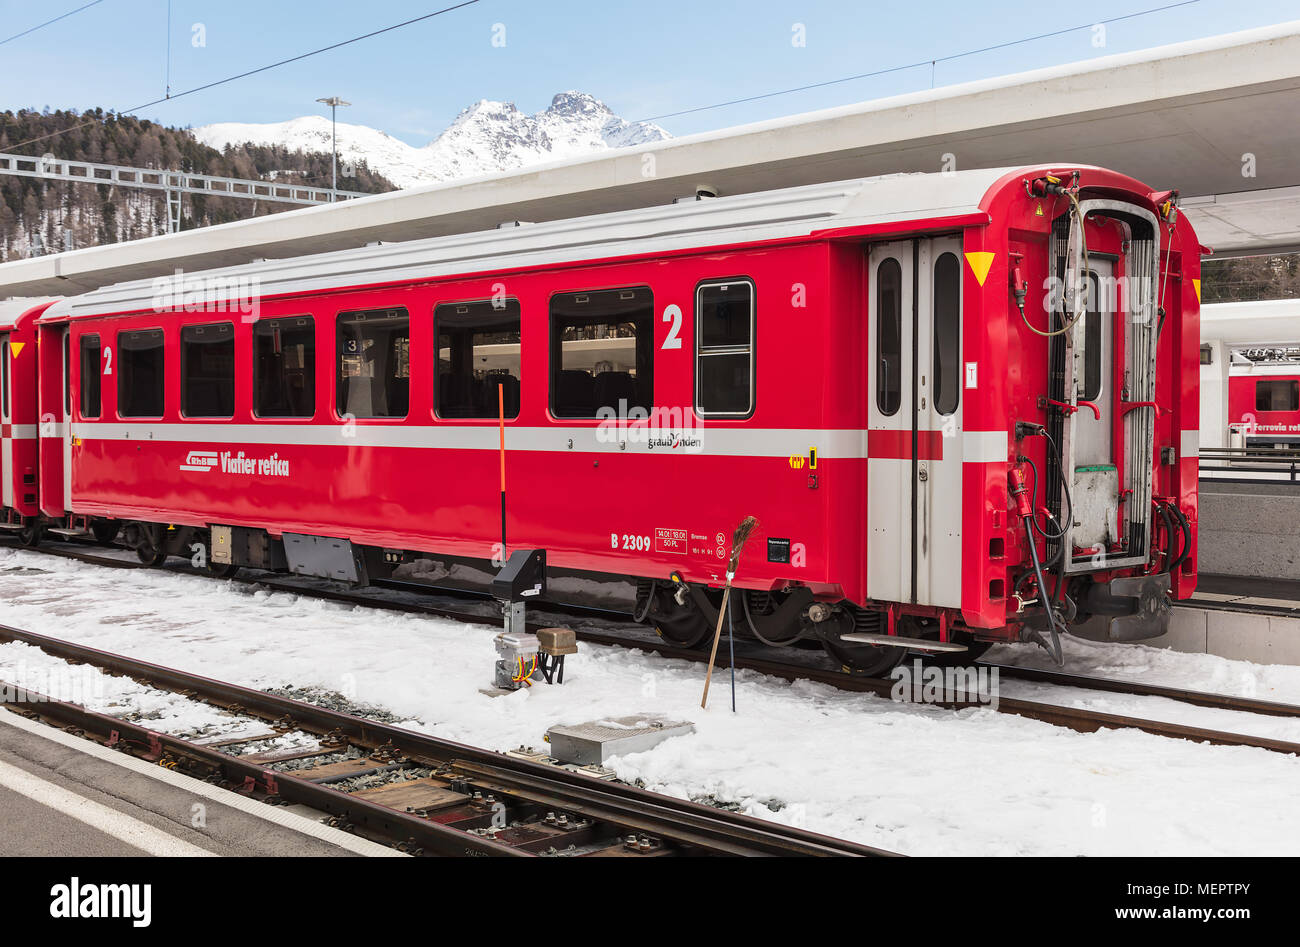 St. Moritz, Switzerland - 3 March, 2017: a railroad car of the Rhaetian Railway at a platform of the St. Moritz railway station. The Rhaetian Railway  - Stock Image